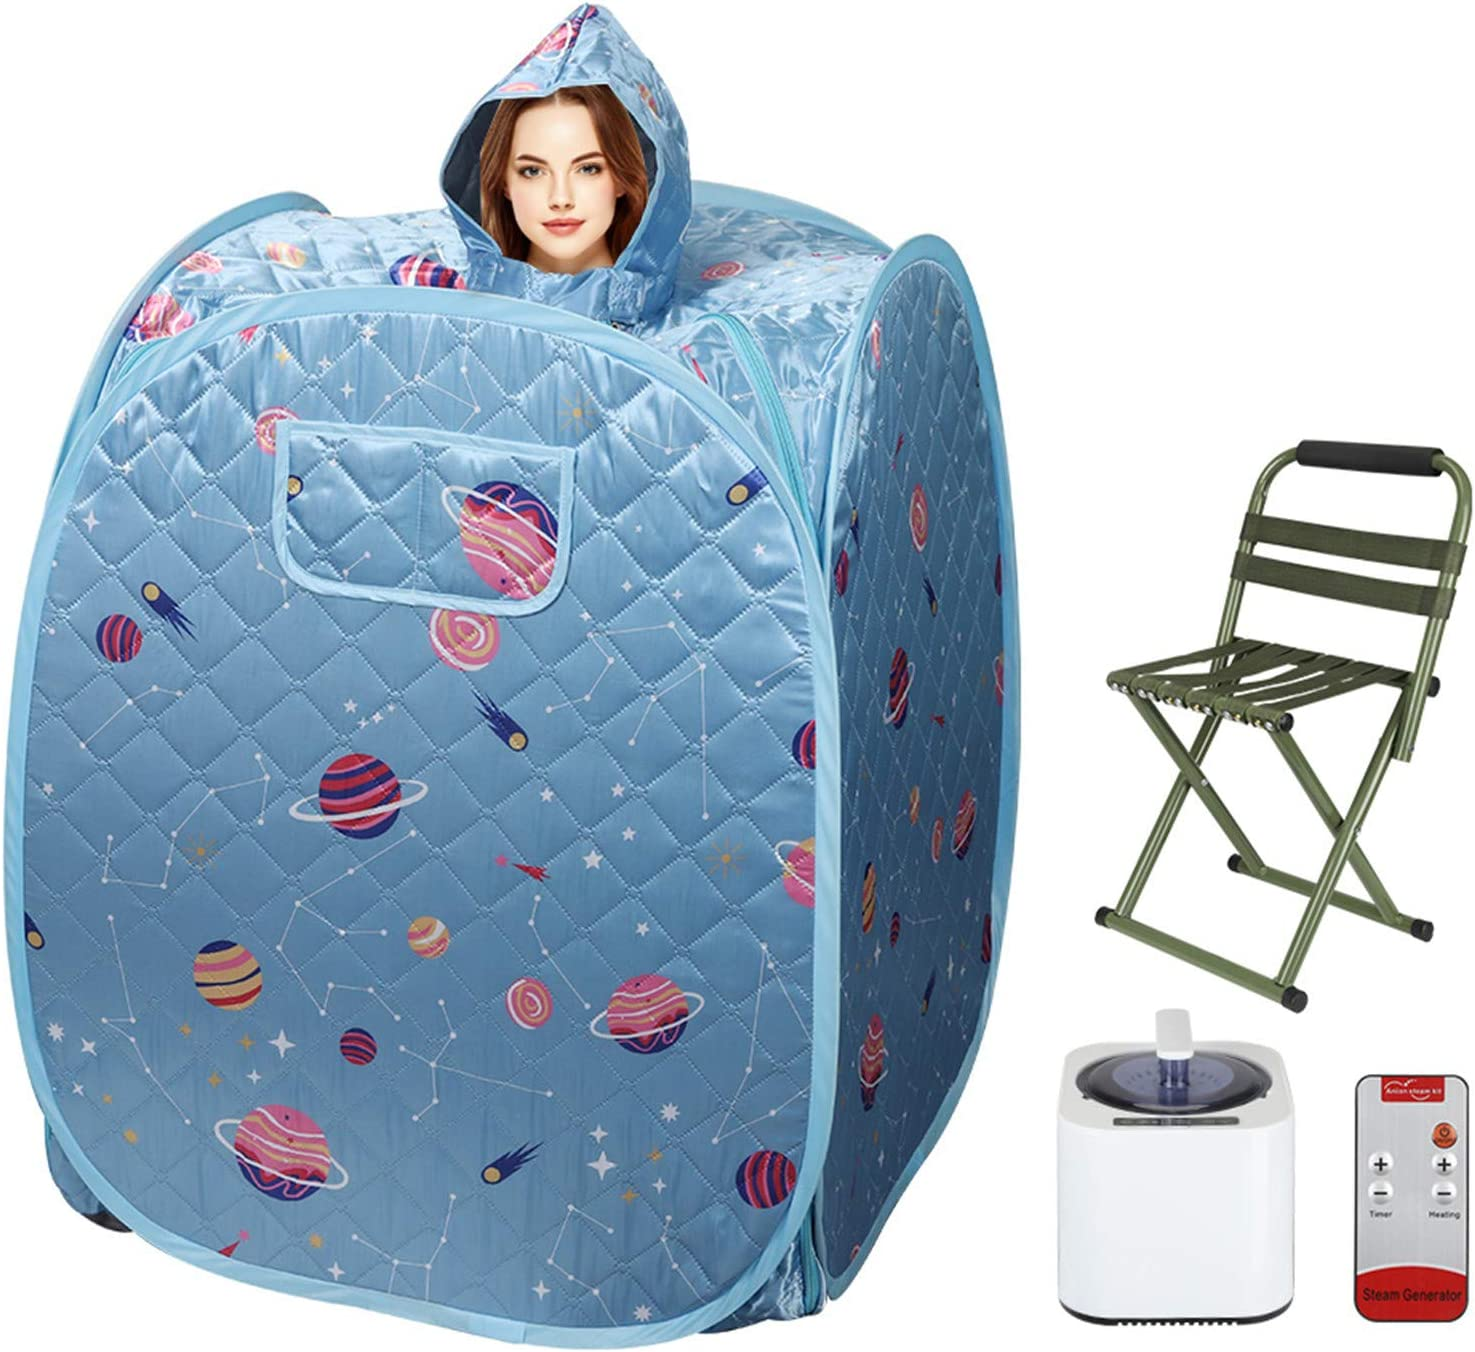 ETE ETMATE 2.2L Home Sauna Spa, Portable Collapsible Sauna Fumigation Machine with Storage Bag, Remote Control, Stool, for Weight Loss and Beauty Detoxification